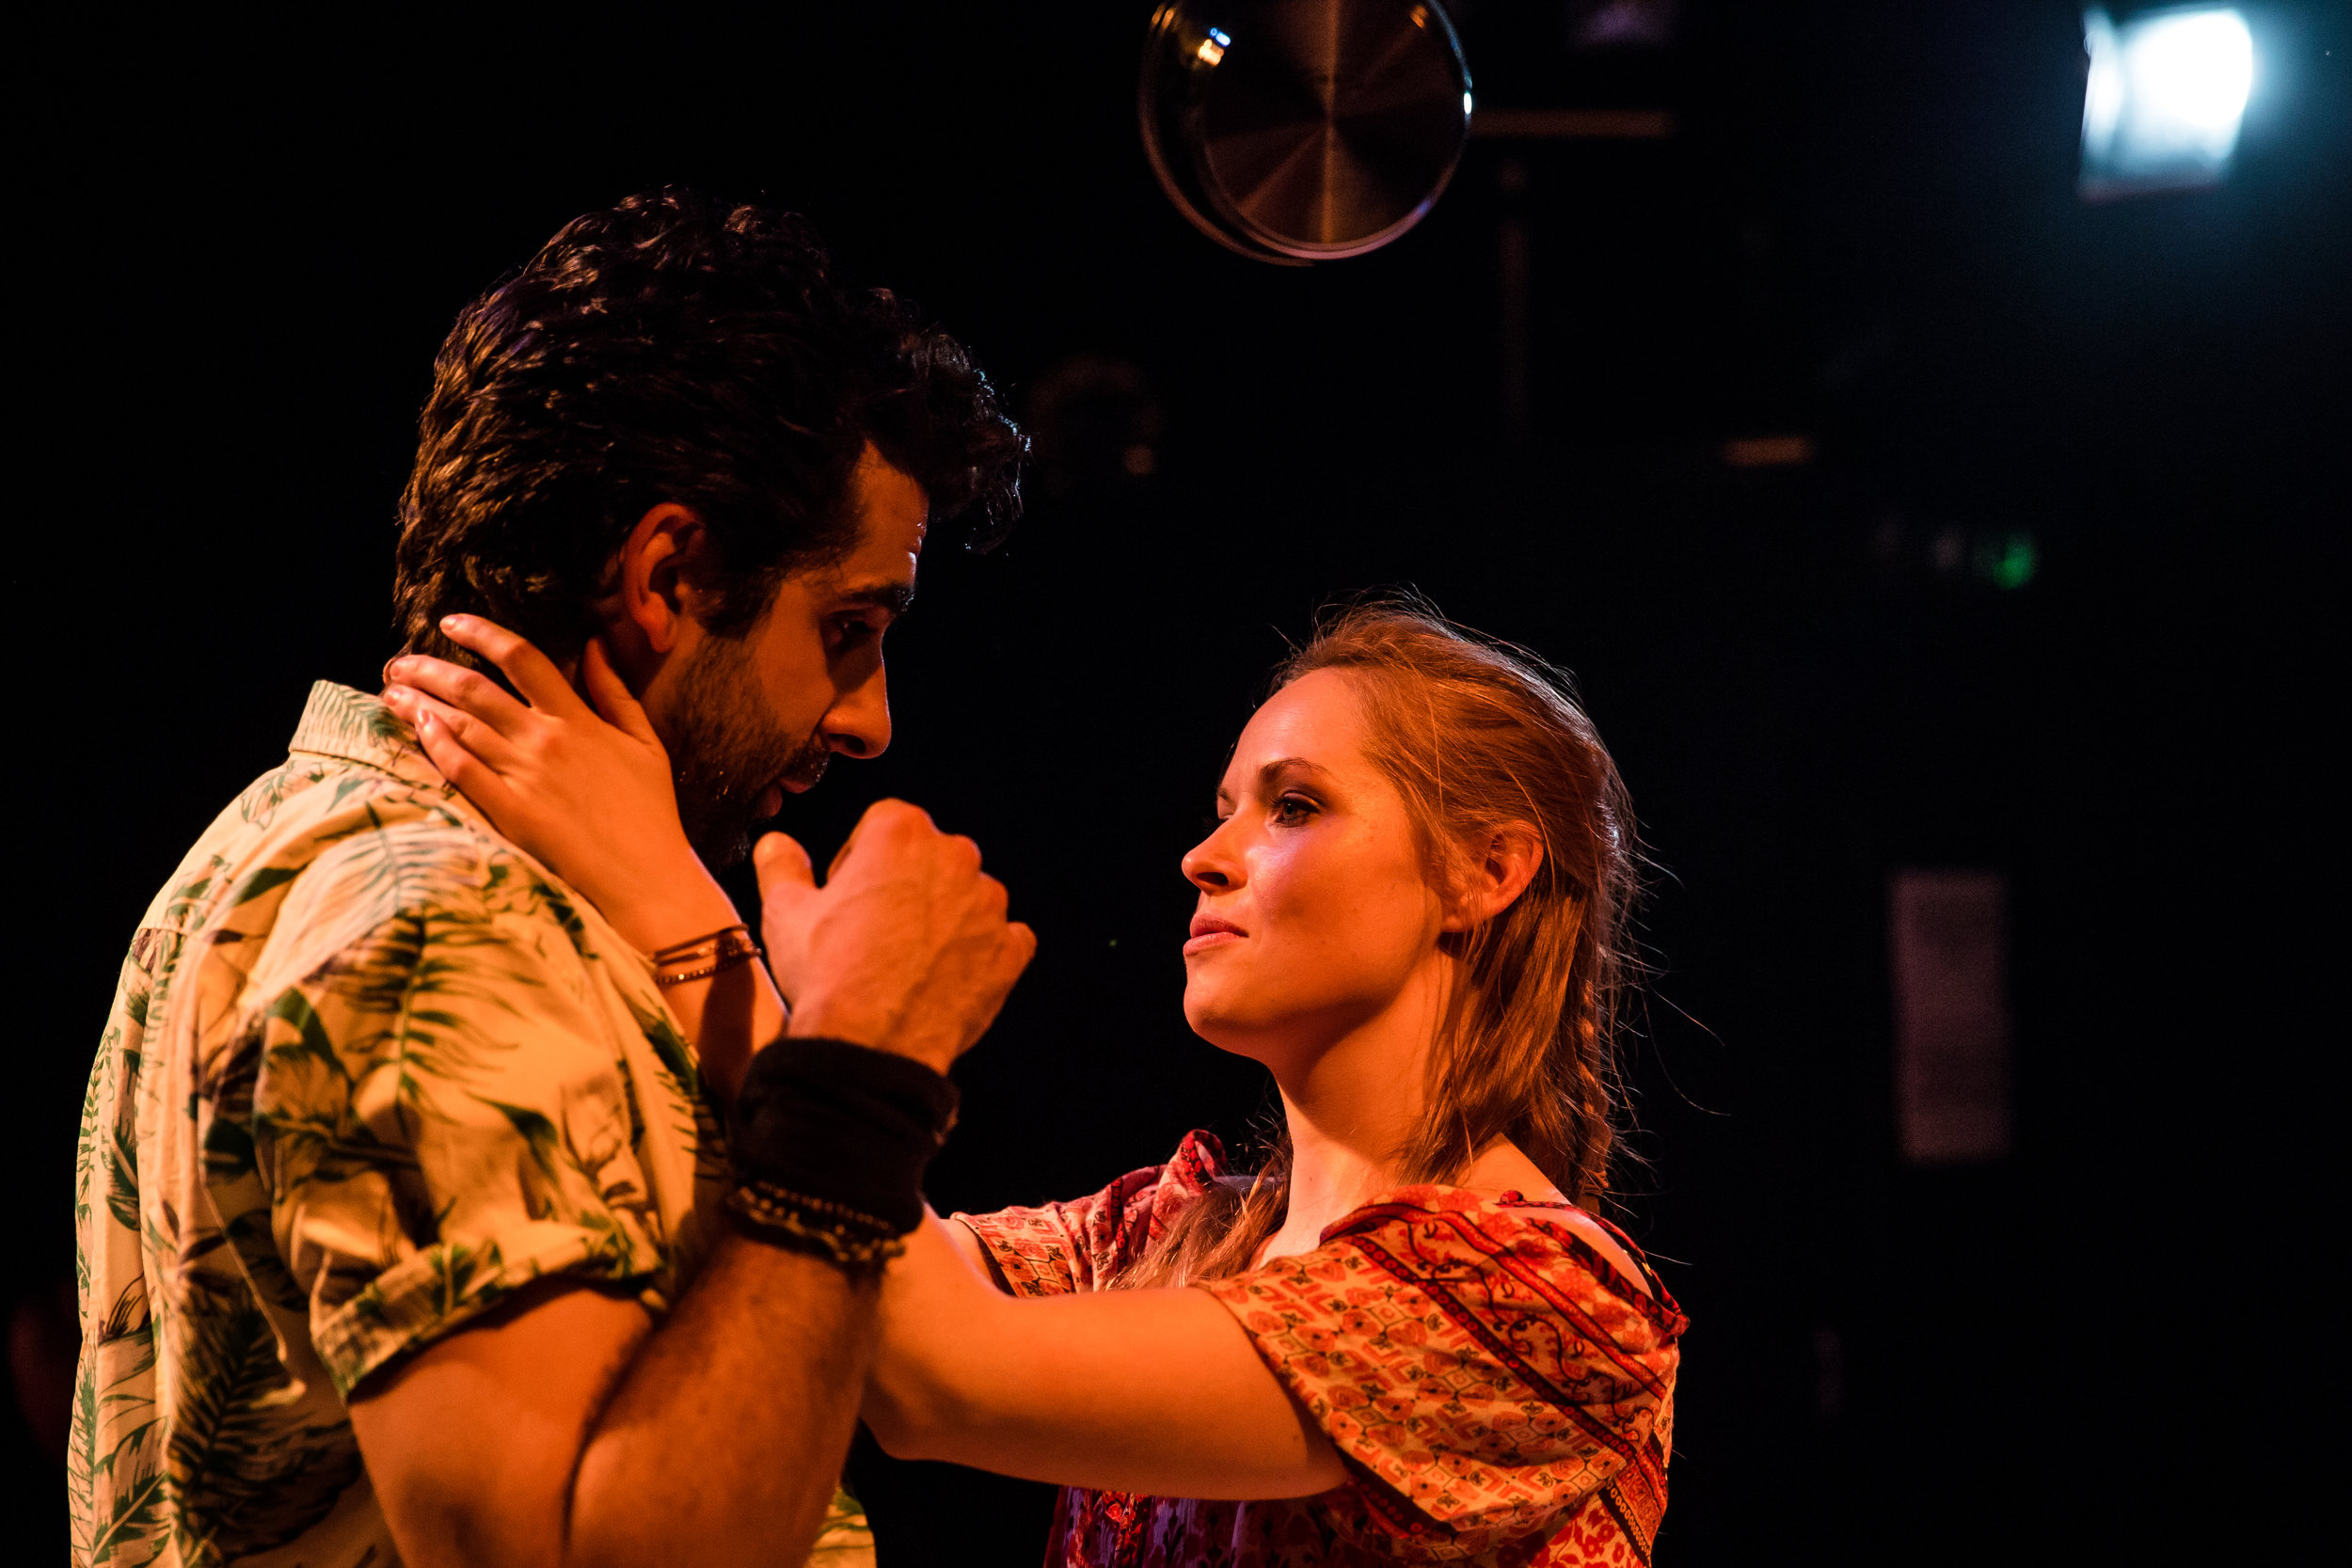 Scott Karim as Hakan (left) and Lily Newbury-Freeman as Nancy (right) in Food, by Steve Rodgers.Photo Credit:The Other Richard